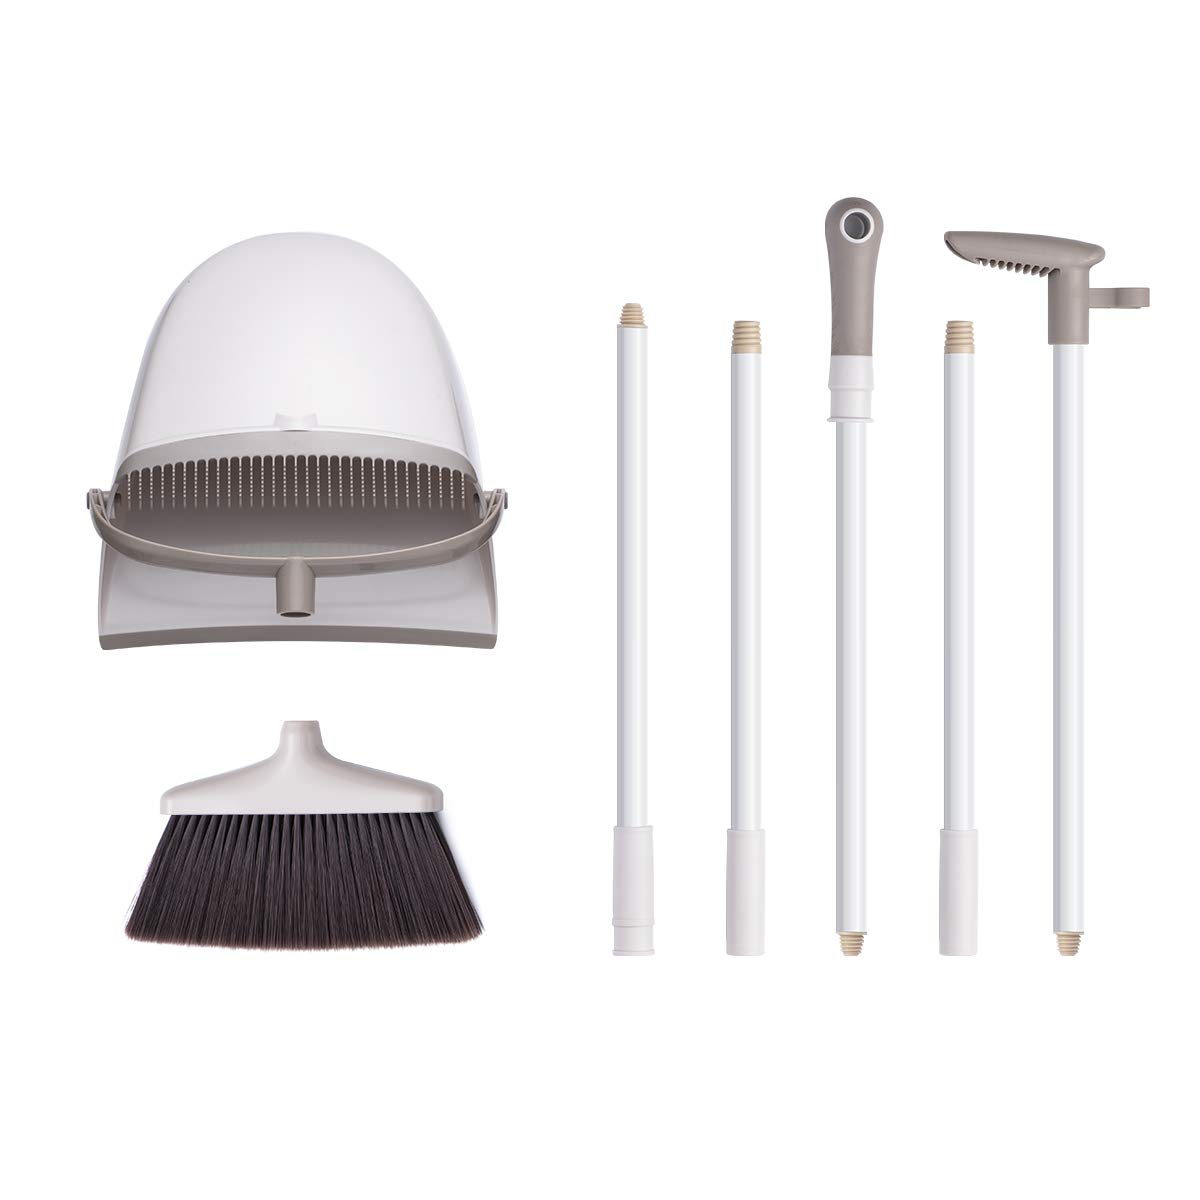 Broom and Dustpan Set, CQT Dust Pan and Broom with Long Handle for Home Kitchen Industry Lobby Floor Sweeping Upright Stand Up Dustpan Cleans Broom Combo by CQT (Image #7)